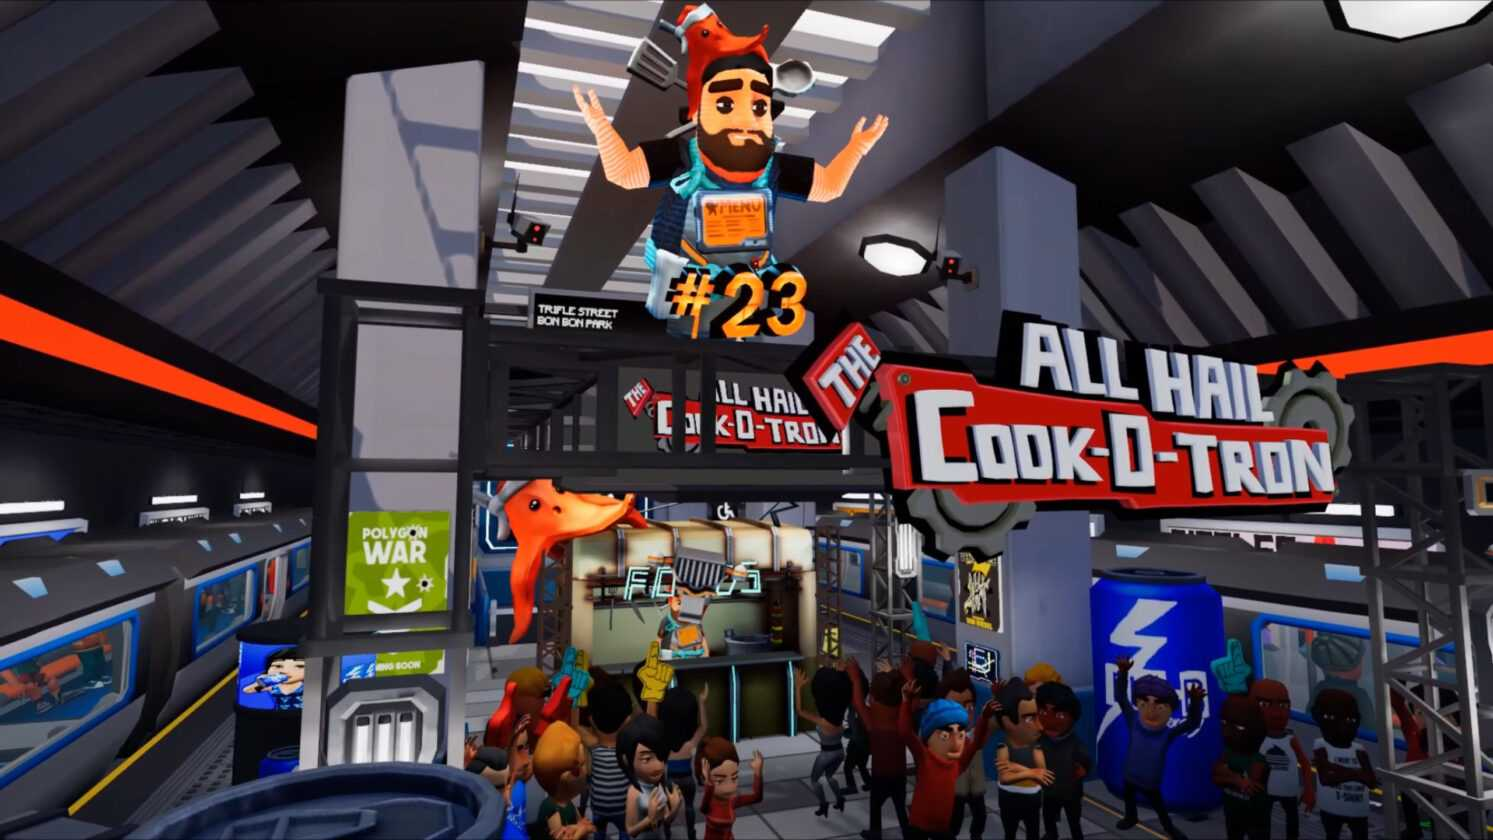 All Hail The Cook-o-tron Is Now Available on Steam For A VR Cooking Experience